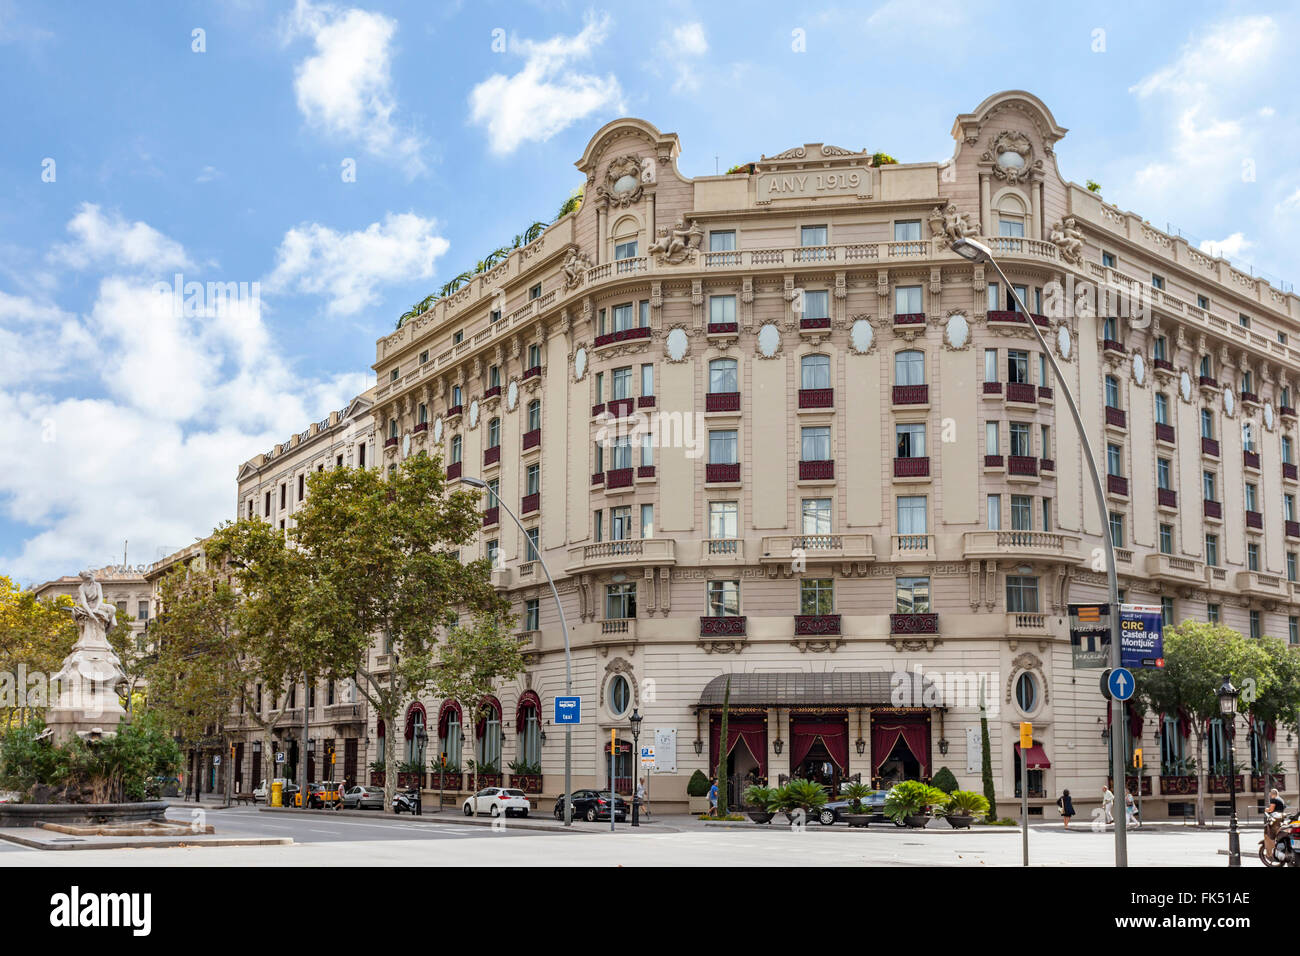 Hotel Palace, for years was the Hotel Ritz. Gran Vía, Barcelona. - Stock Image